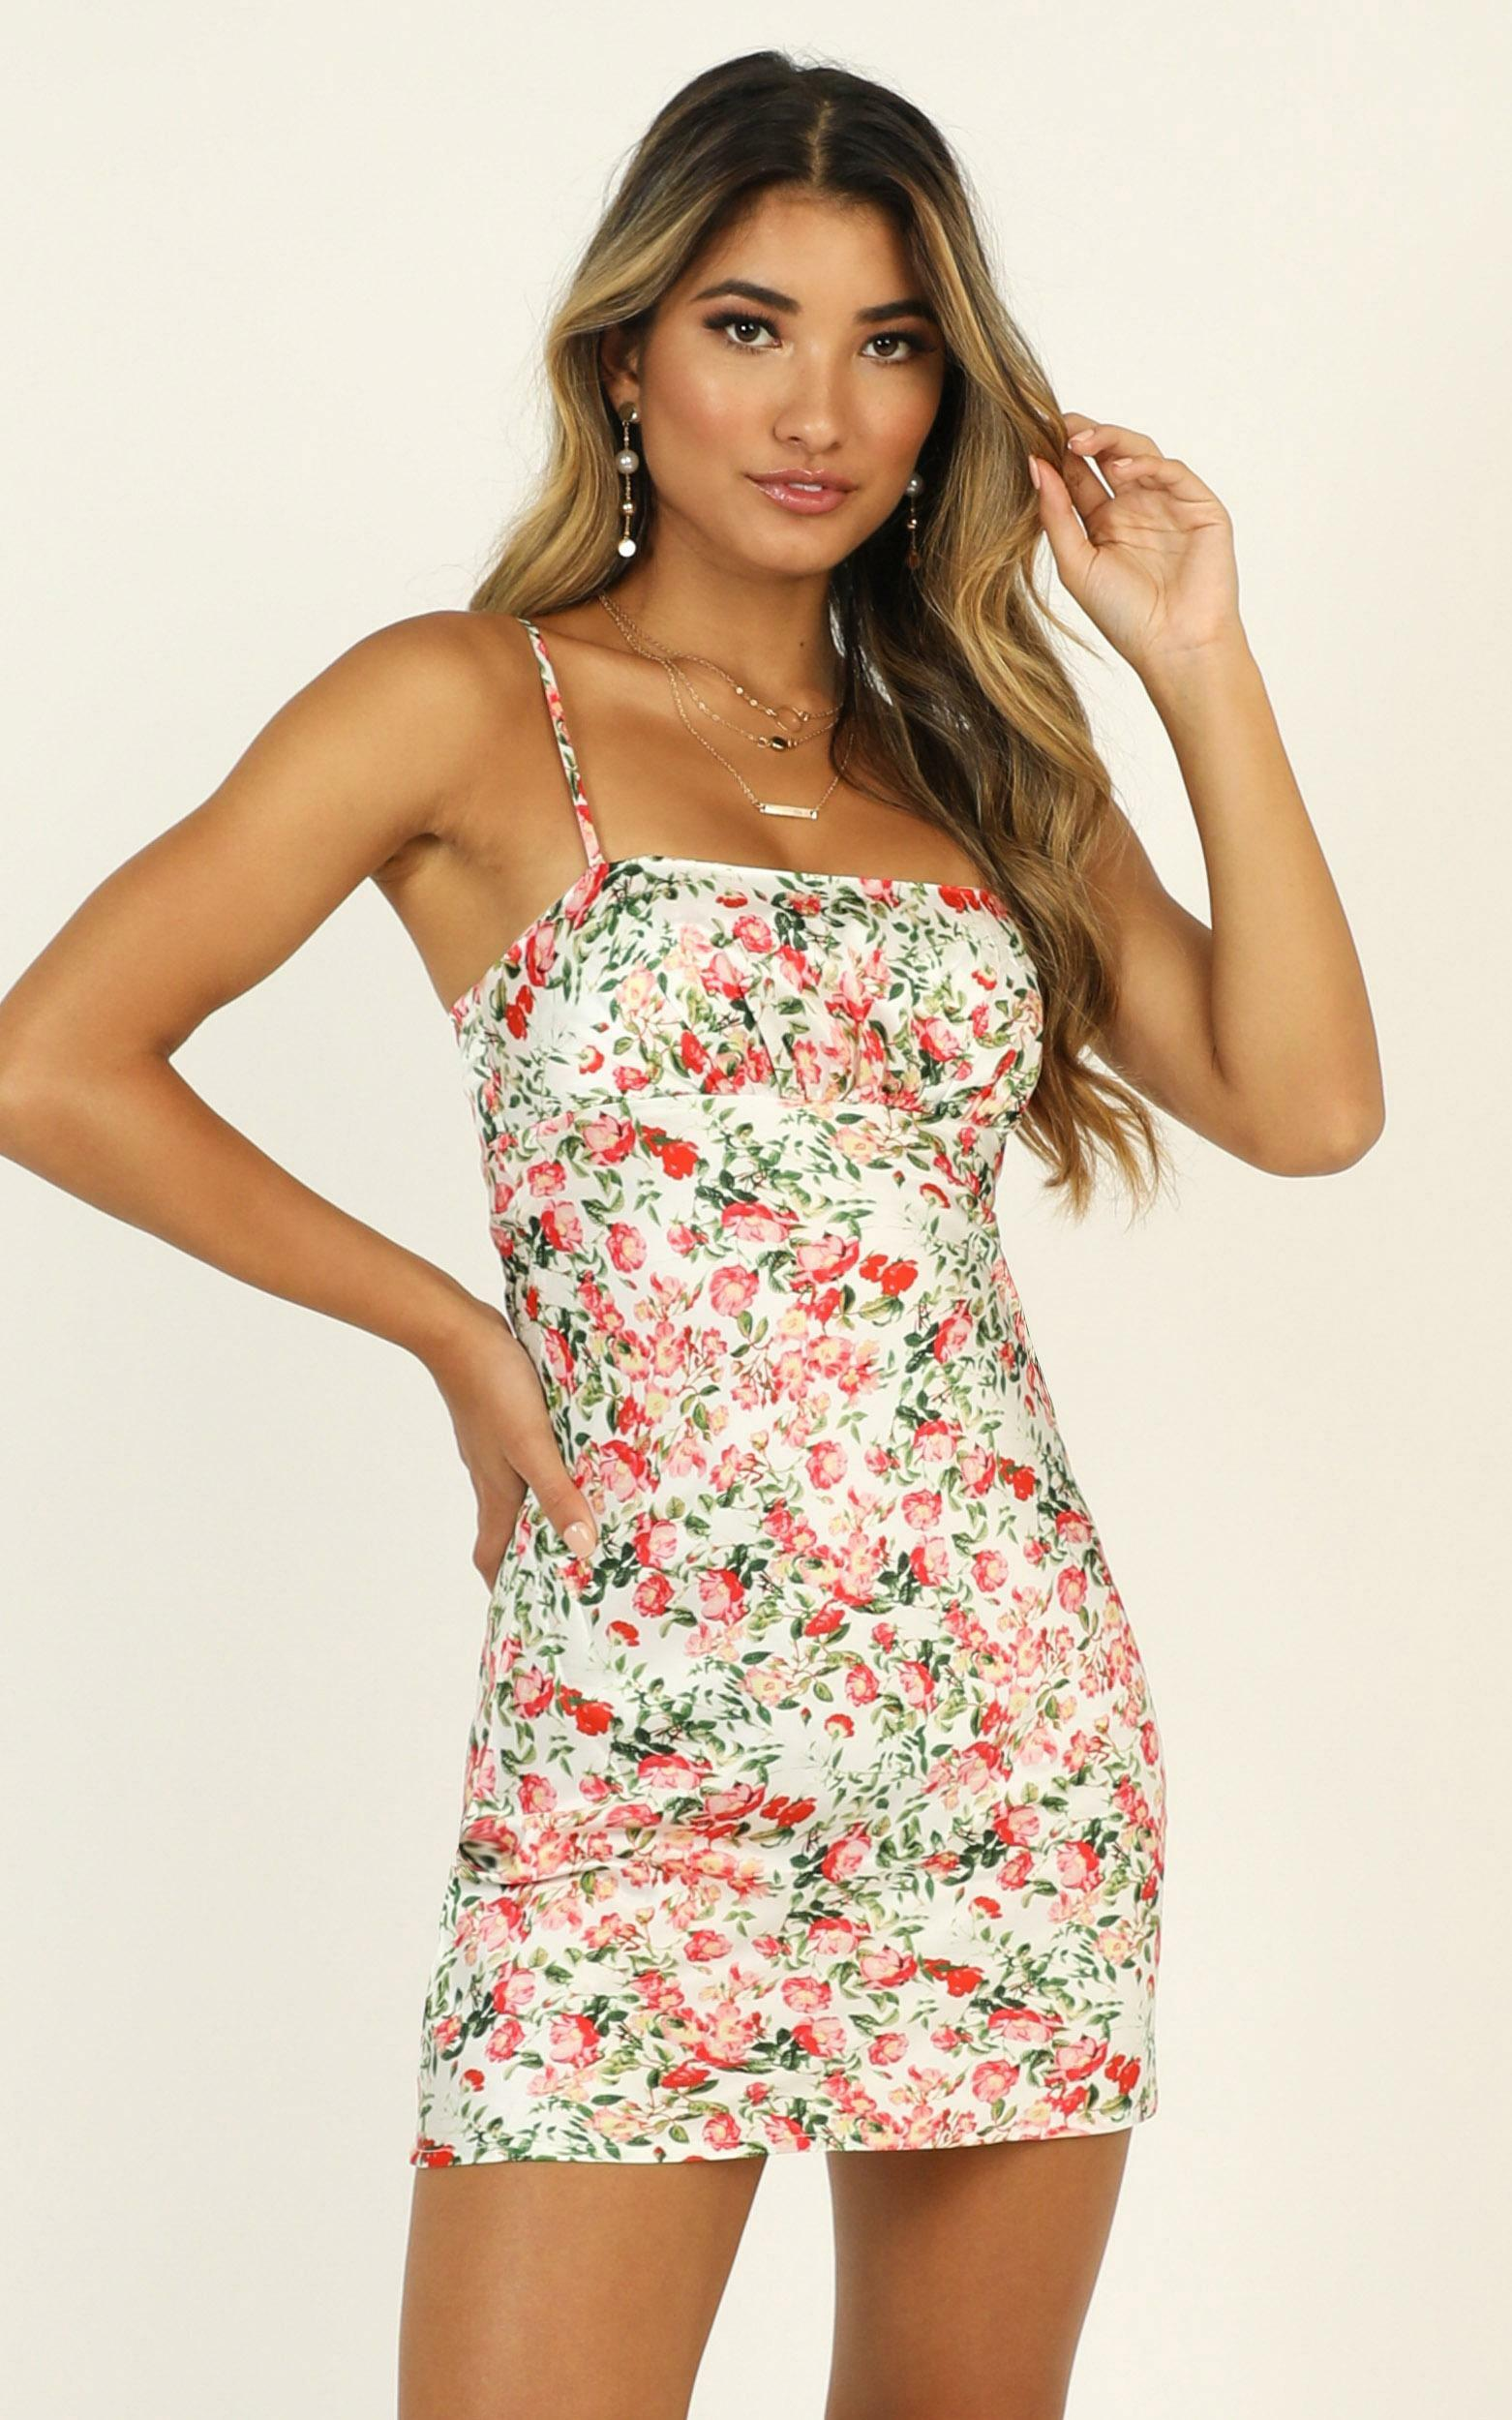 Bold Moves satin dress in multi floral - 16 (XXL), Pink, hi-res image number null